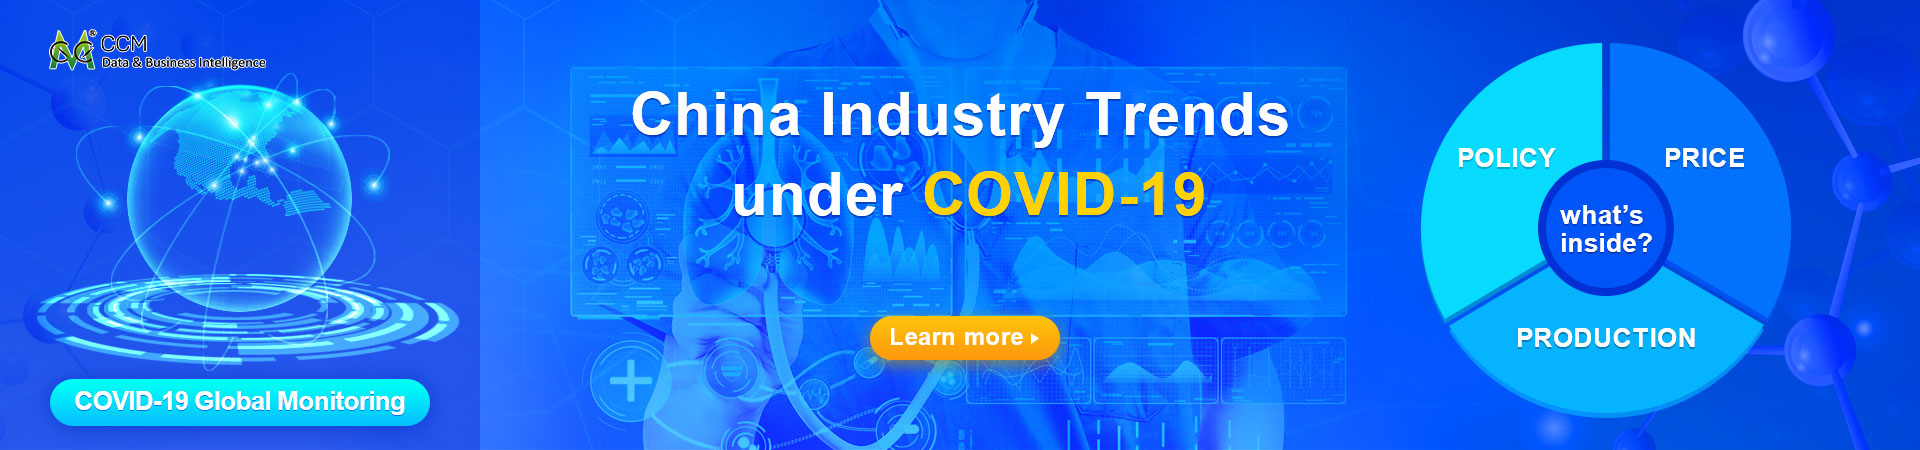 Industry Trends under COVID-19